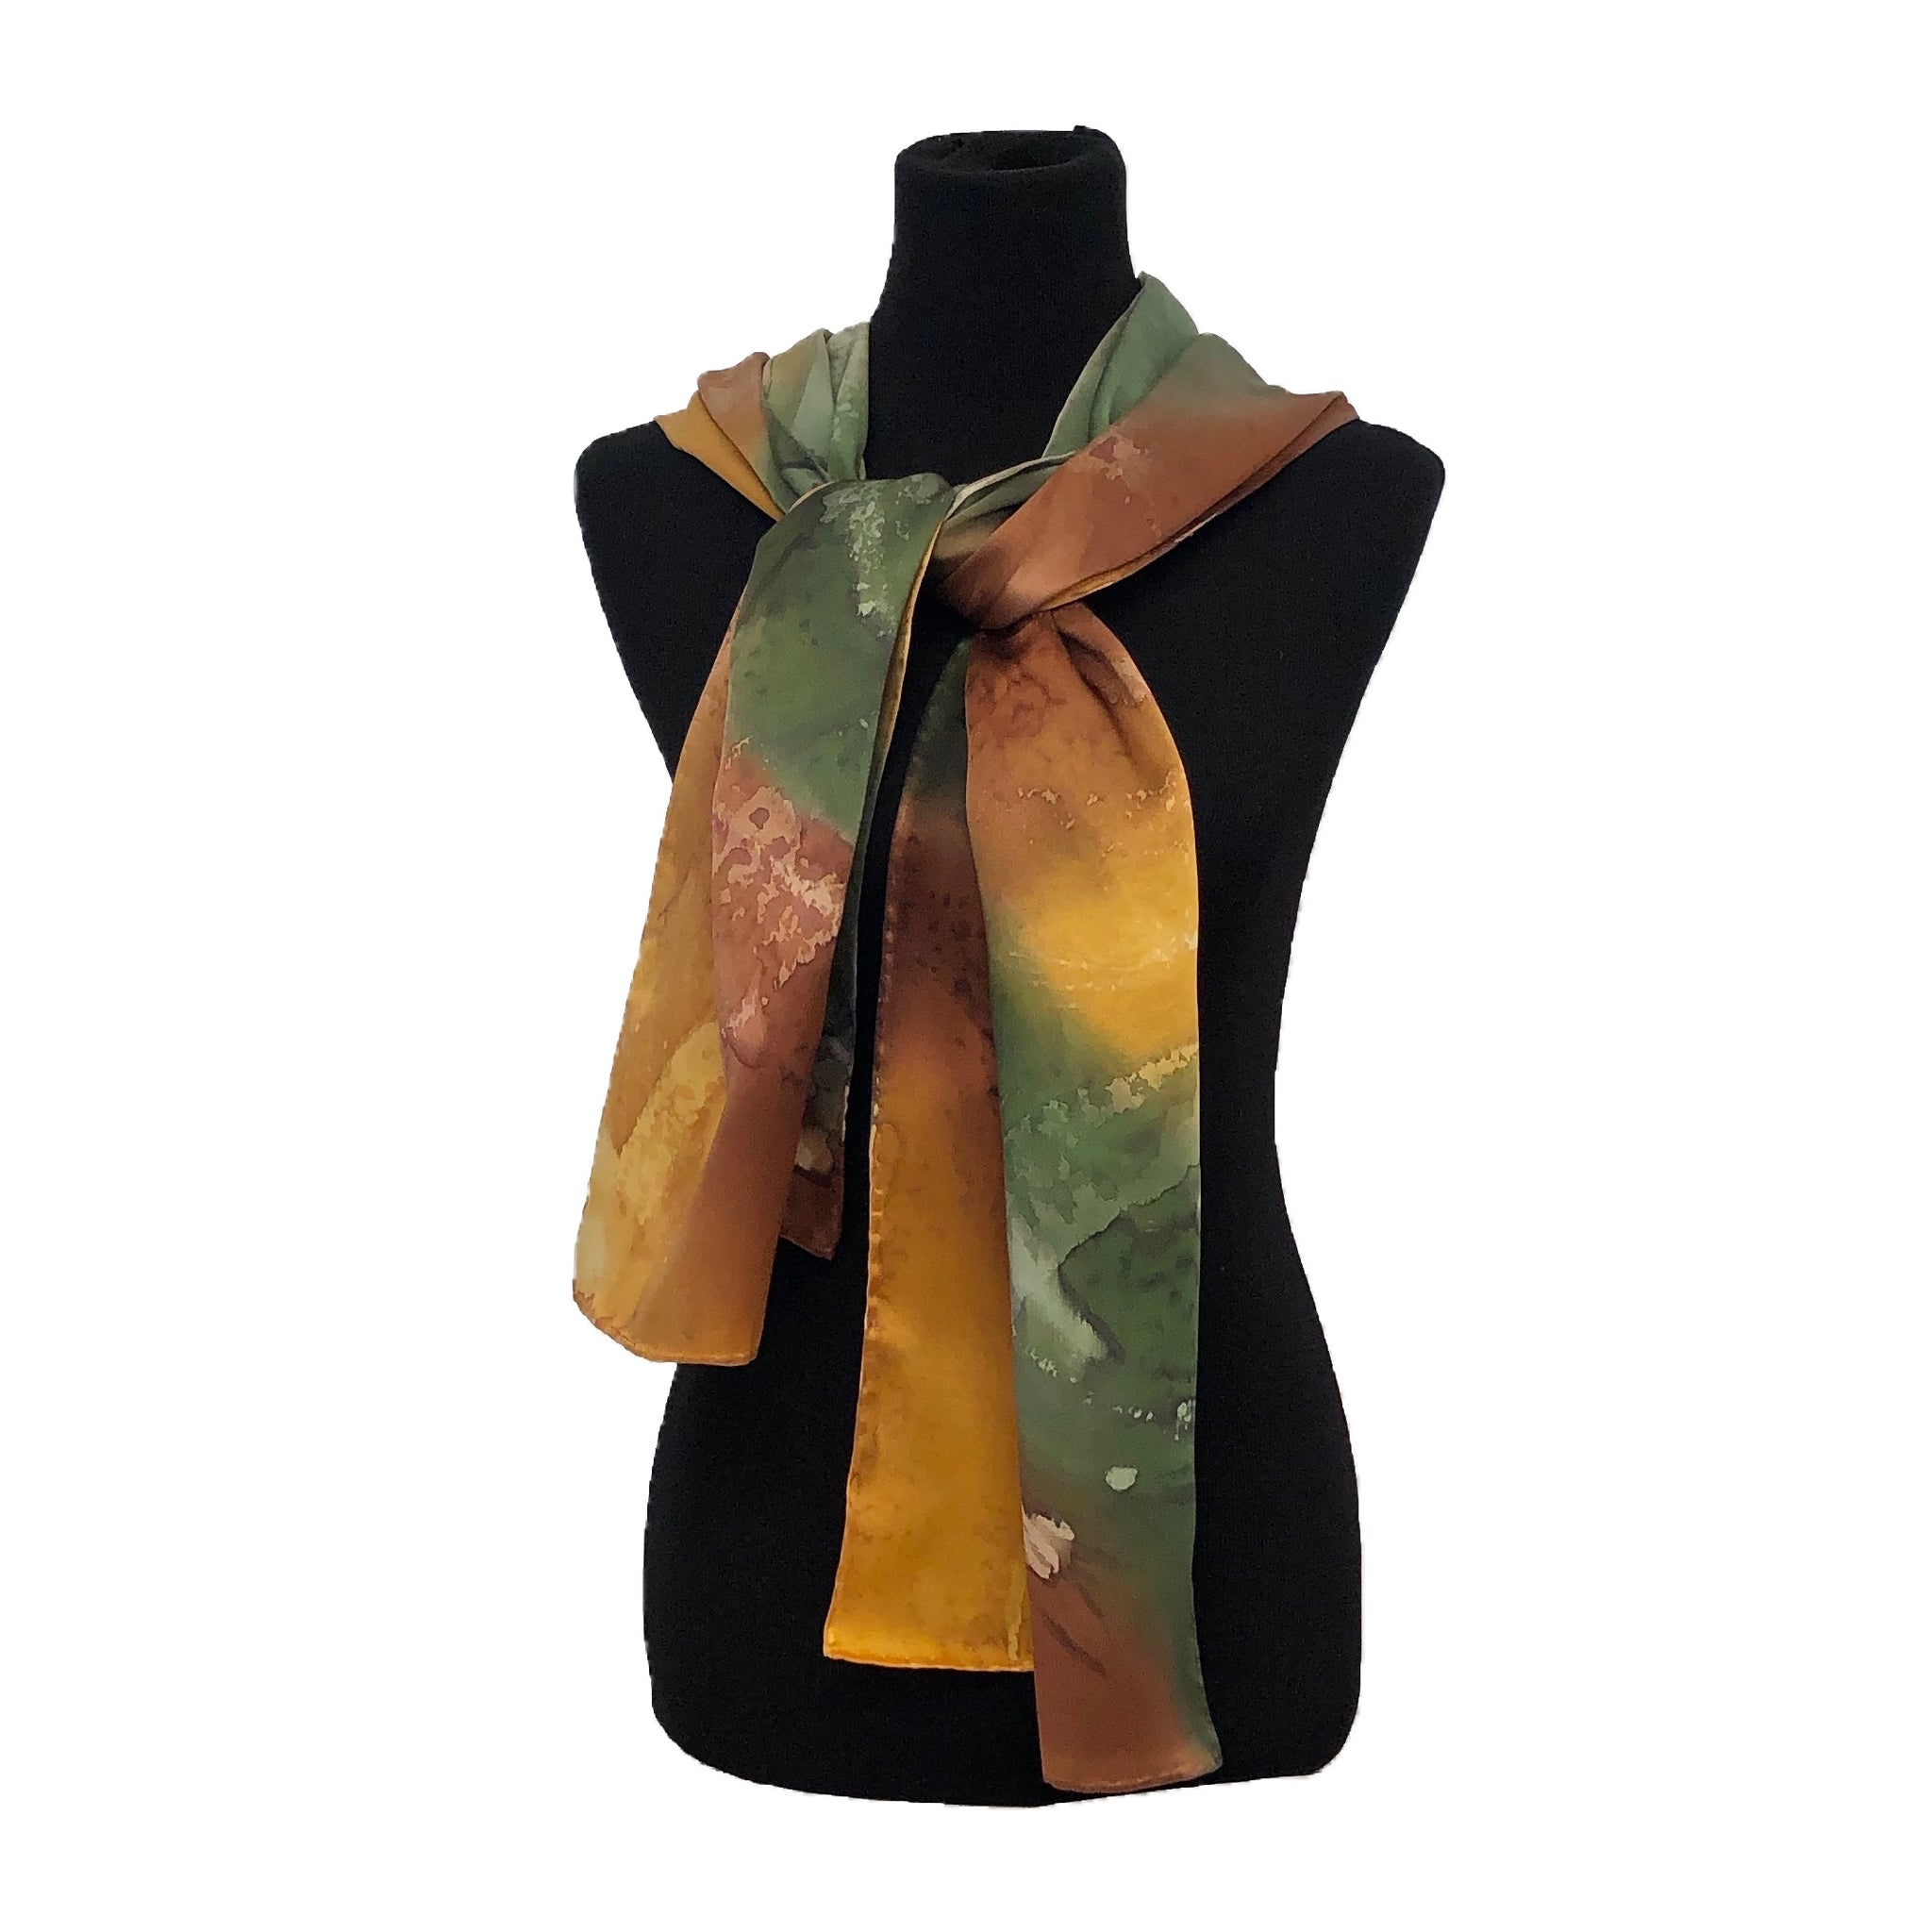 100% Silk Satin Handpainted Scarf - Gold, Brown Siena, and Olive Green